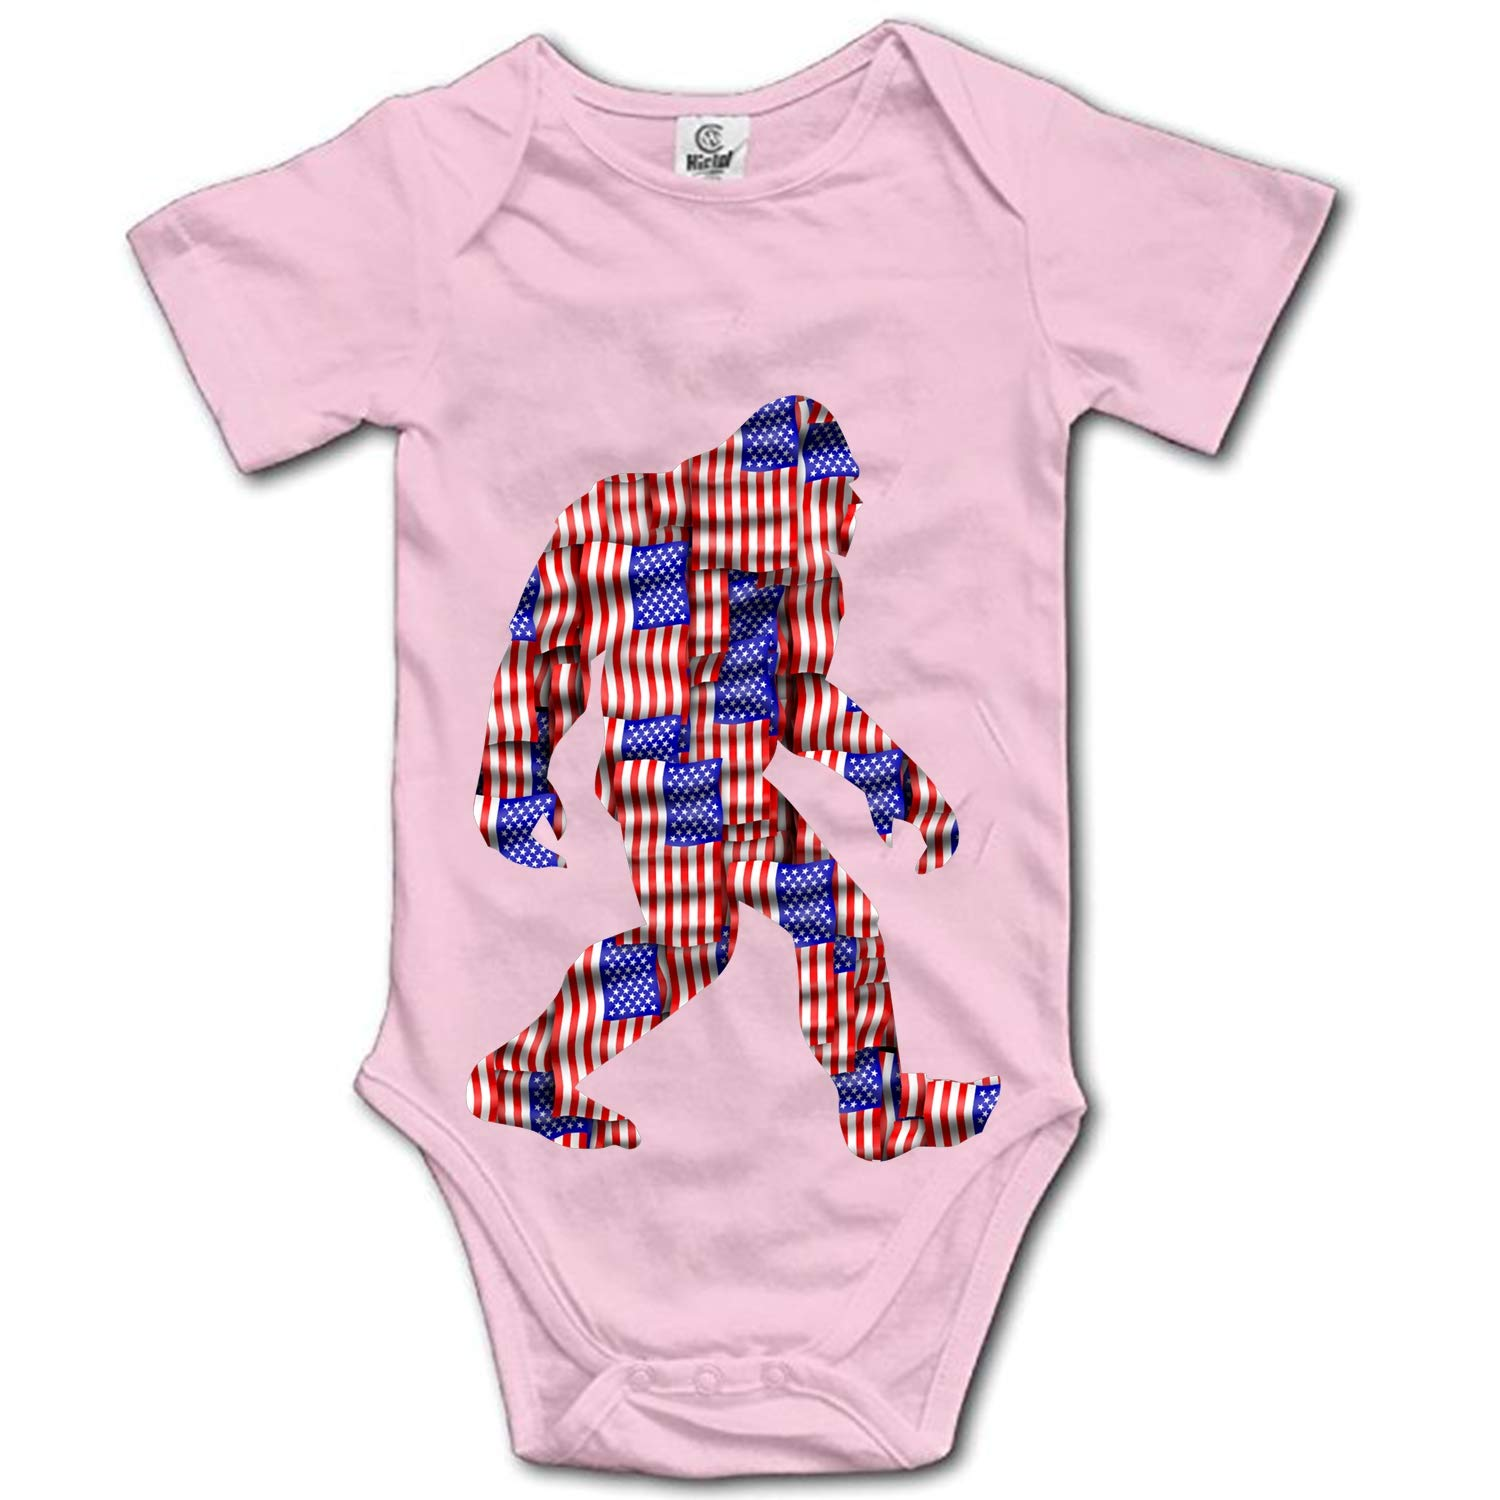 Unisex Baby USA Washington Flag Bigfoot Funny Bodysuits Rompers Outfits 100/% Cotton